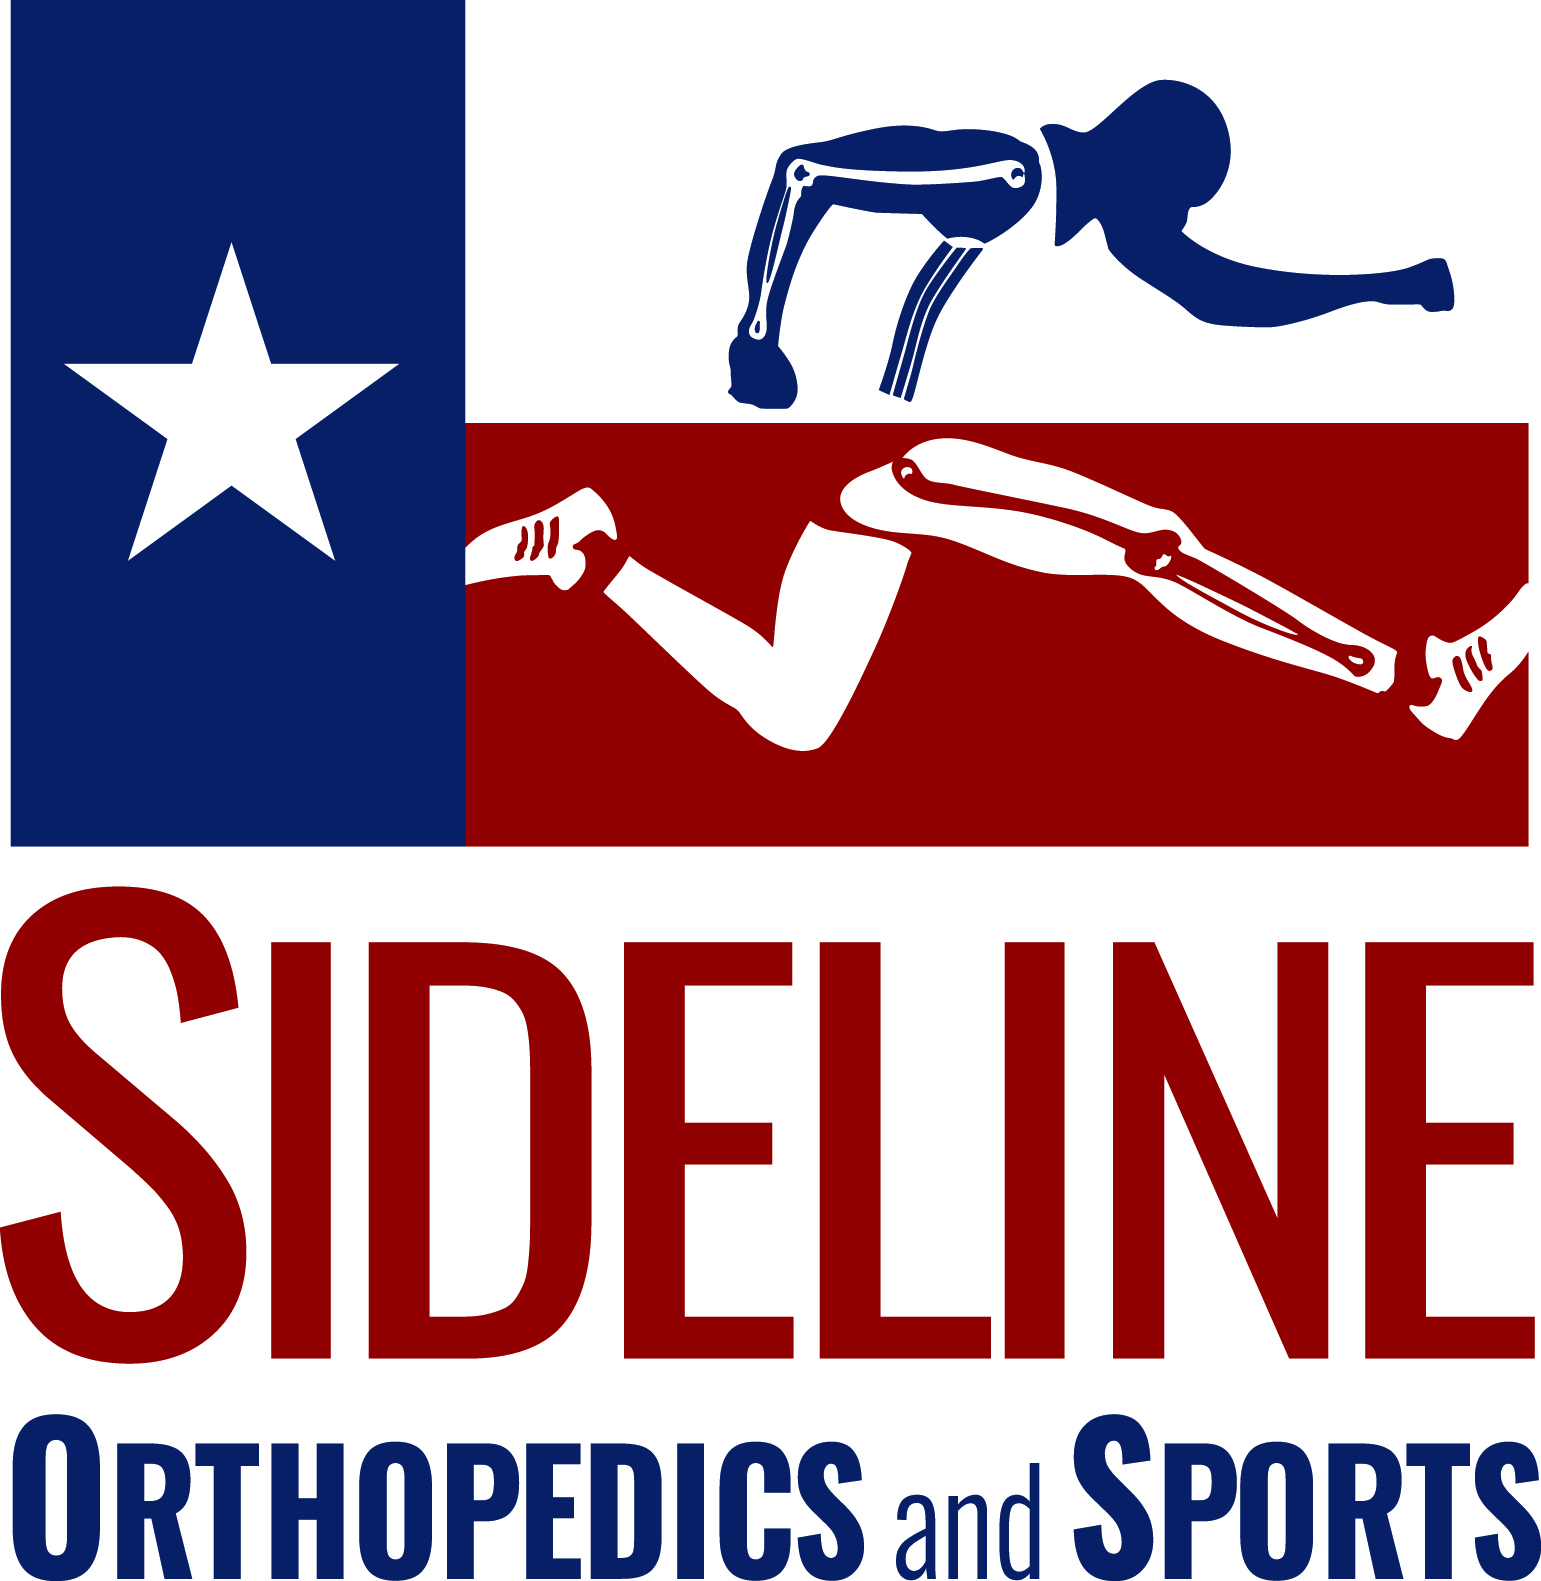 """Sports medicine specialists Lindsey Dietrich, M.D., and Sarah Kennedy, D.O., are dedicated to helping active individuals and athletes who are injured return to their optimal level of performance. Our physicians and clinical staff are highly trained to provide quality supportive care to individuals experiencing musculoskeletal injuries or disease. From pediatric sports injuries and issues facing female athletes to broken bones and concussions, we aim to address each individual's unique condition and needs. Let us help you unleash the power of """"go."""""""